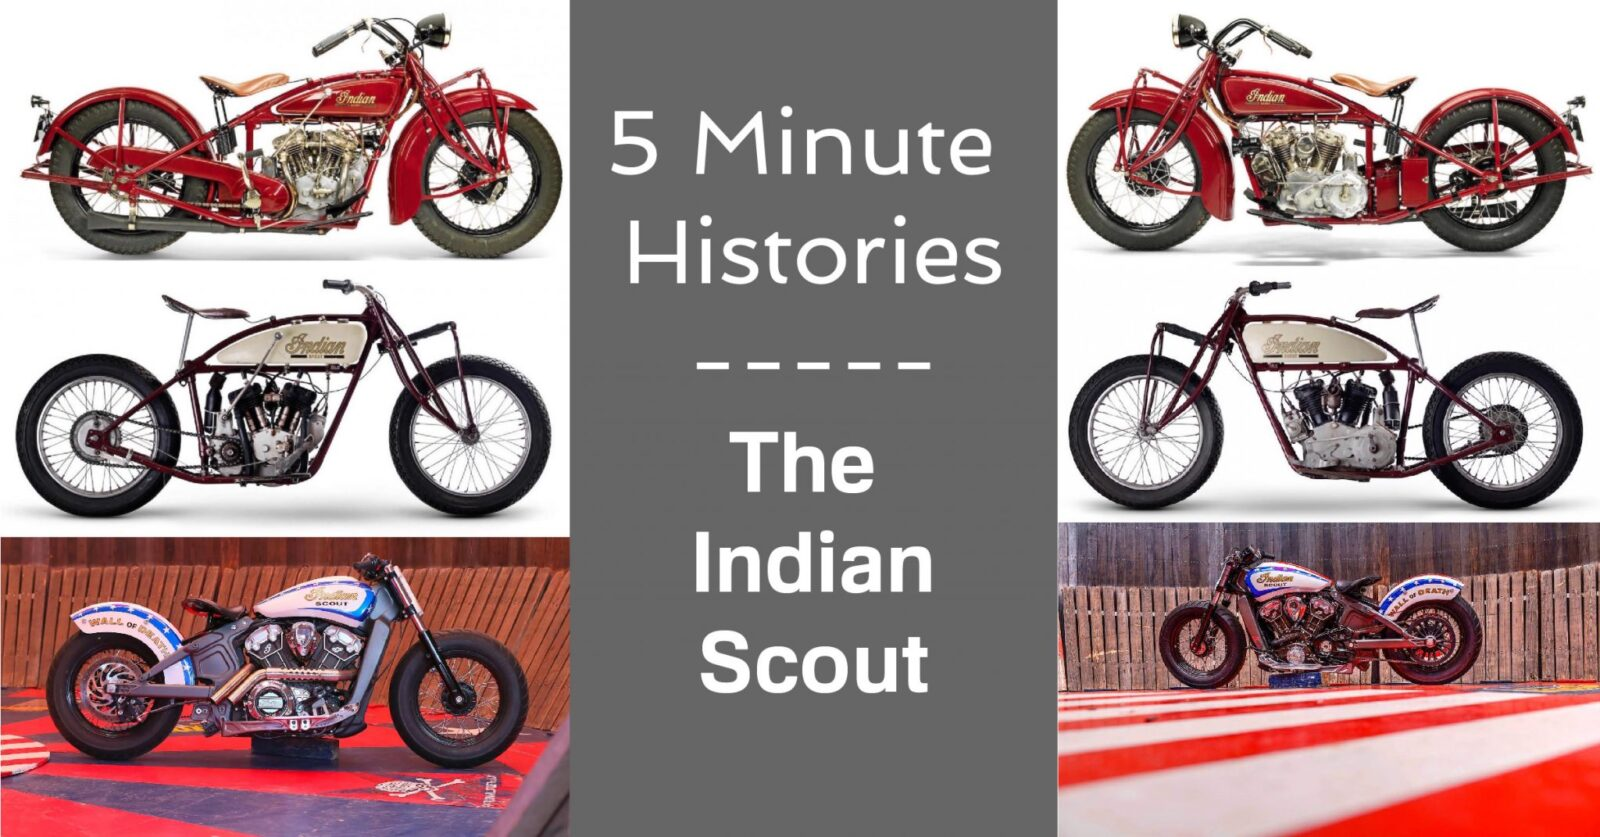 eBay Facebook 5 Minute Template Scout 1600x837 - 5 Minute Histories: The Indian Scout